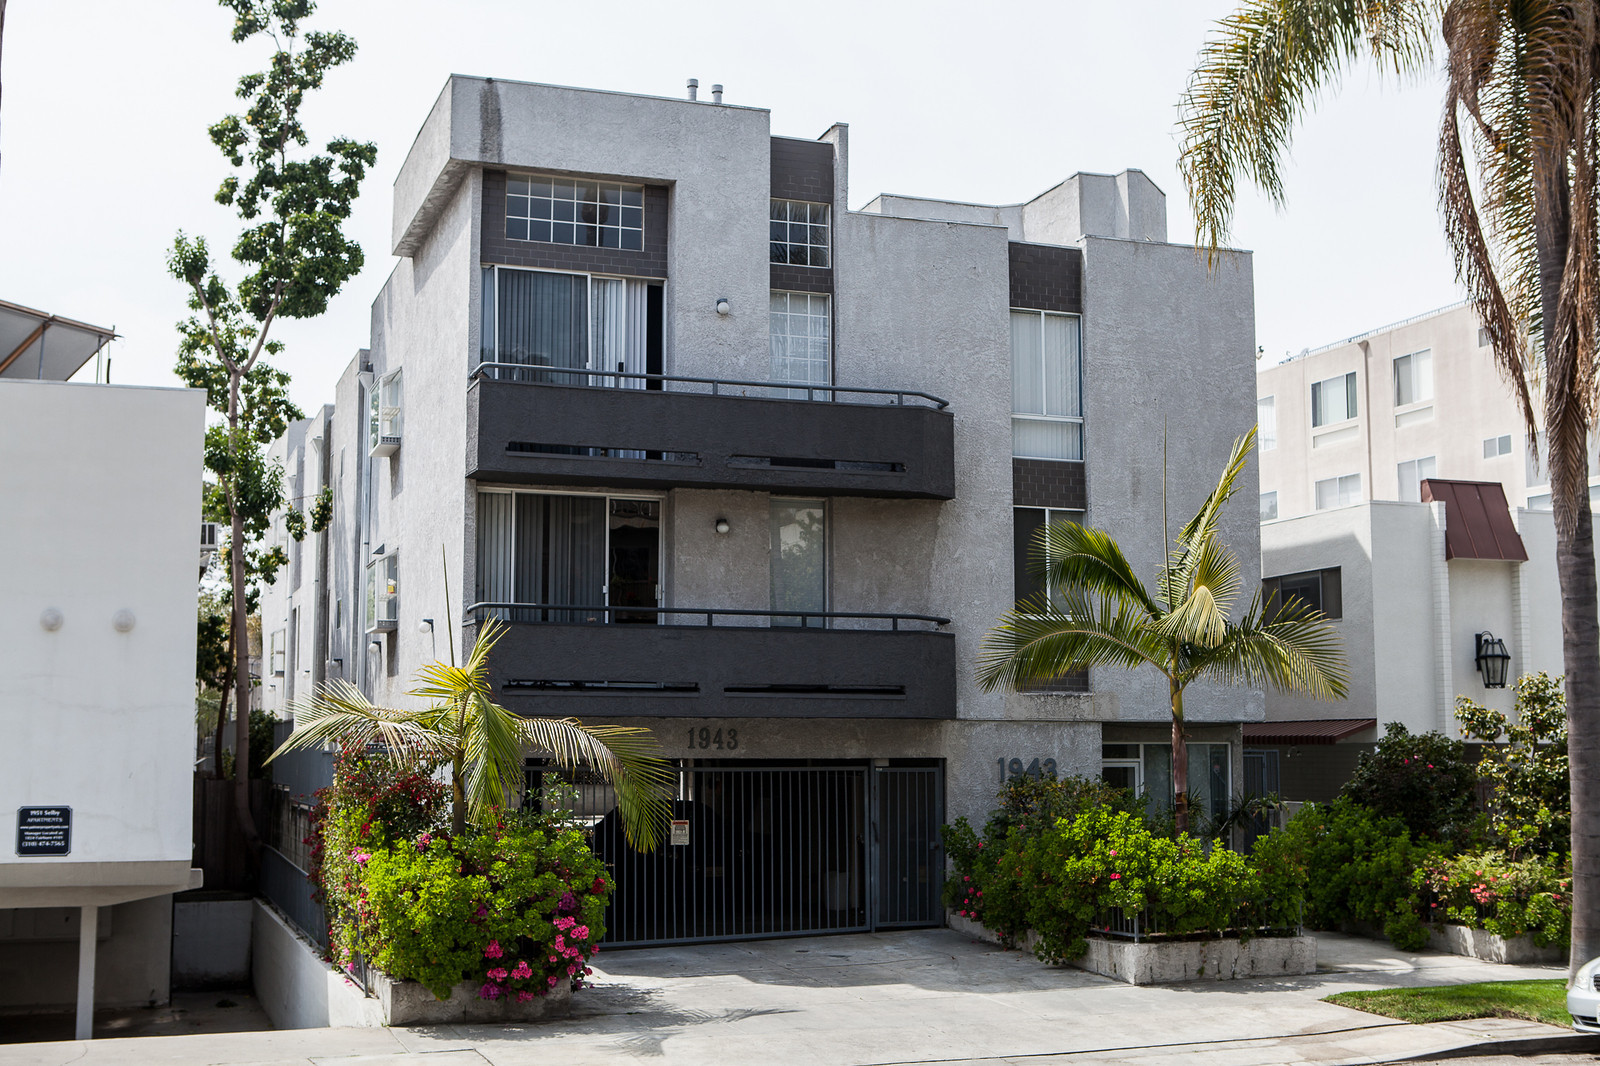 los angeles sober living apartments homes haven